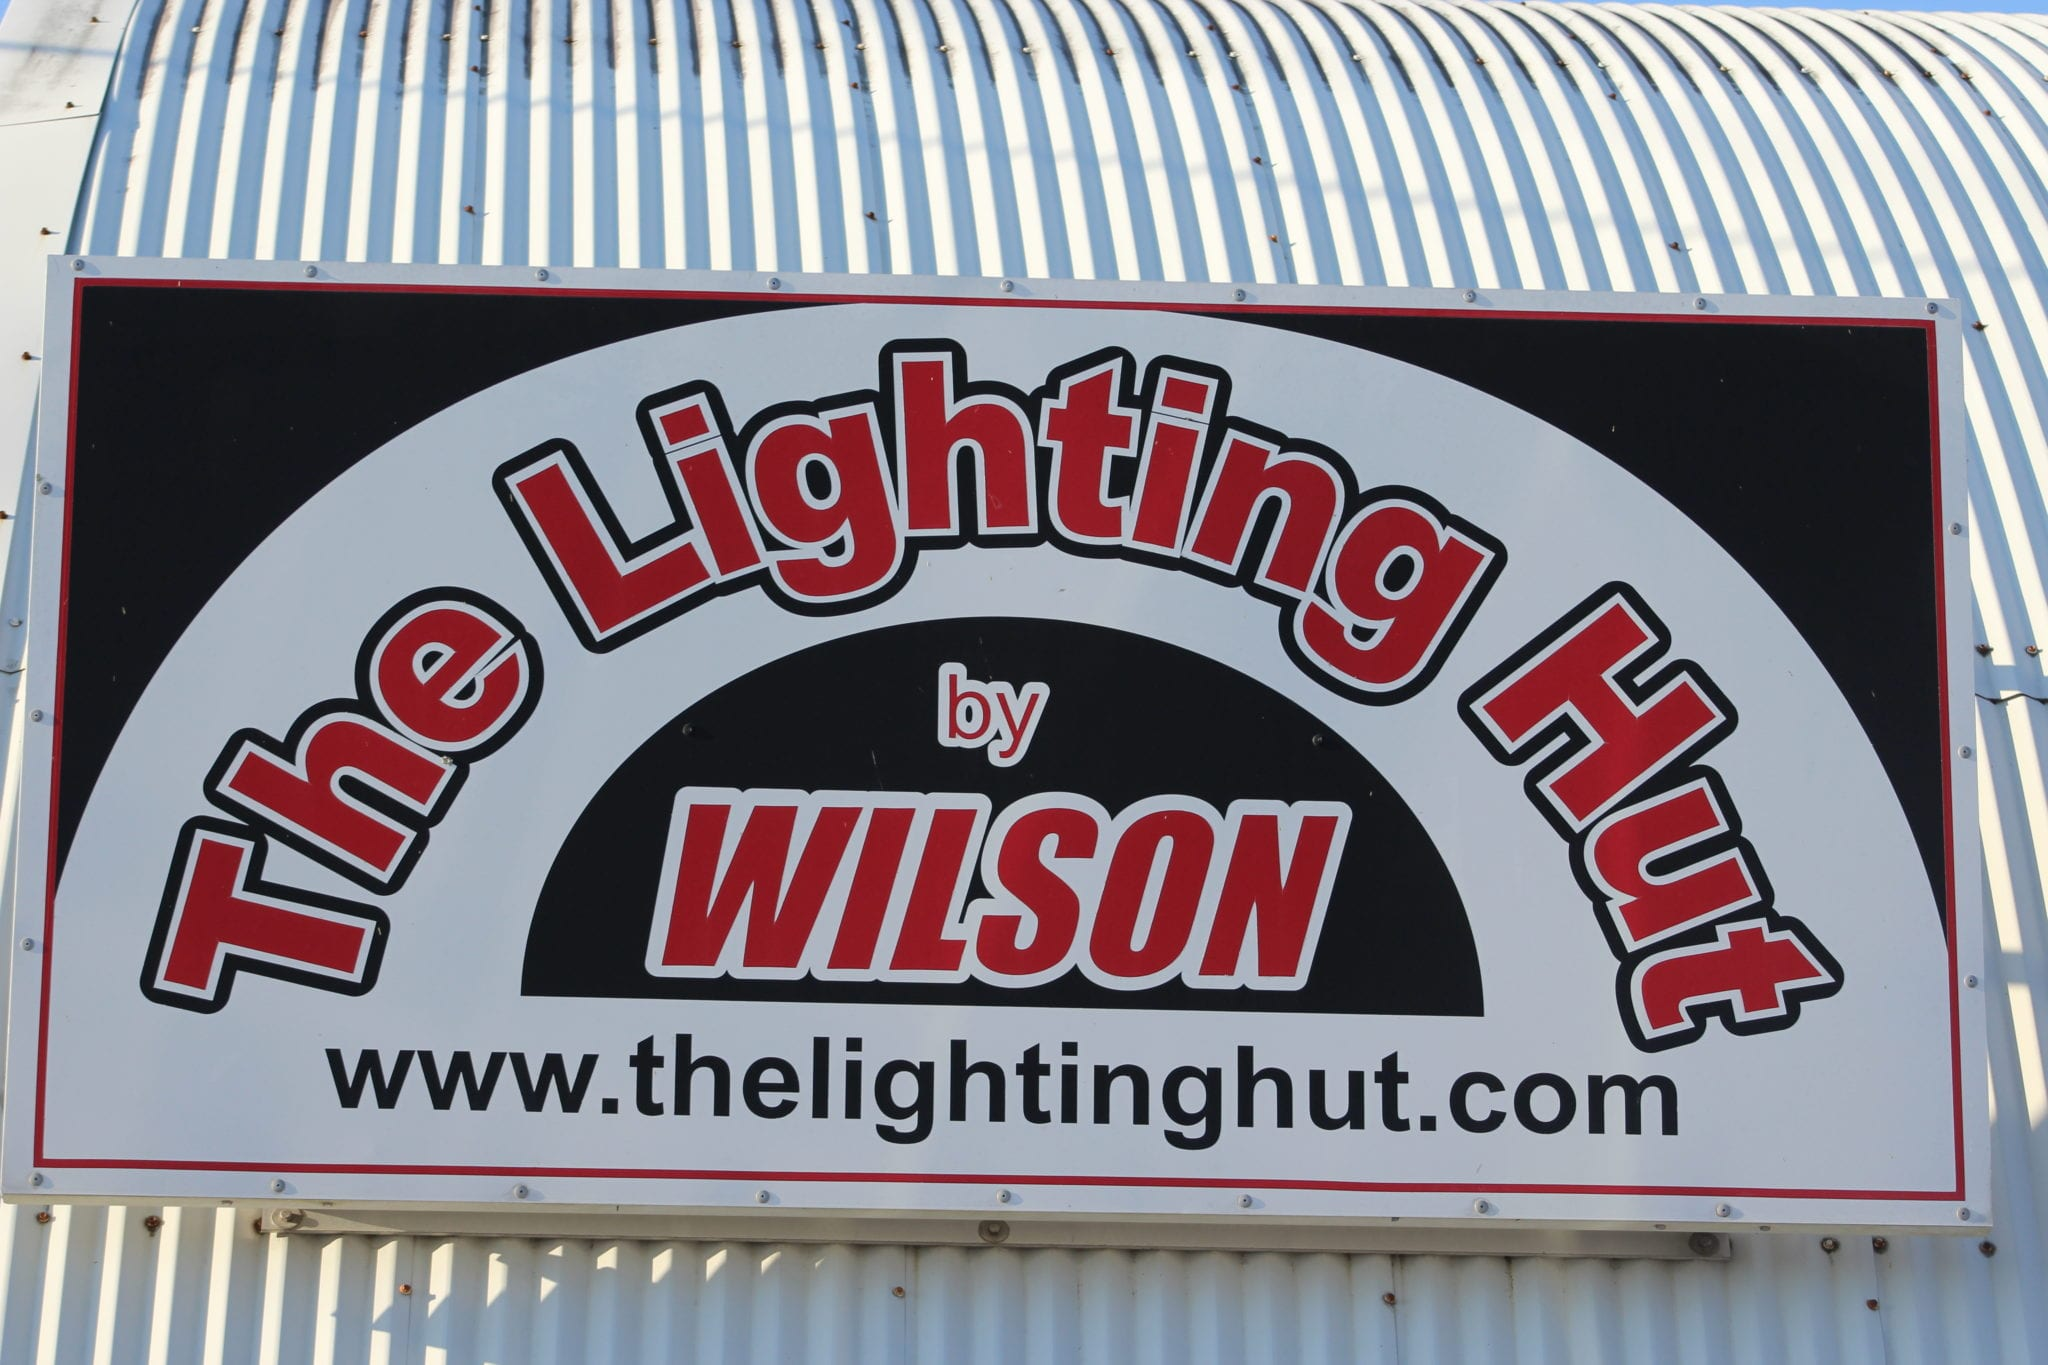 The Lighting Hut. Sister Company of Wilson Electric